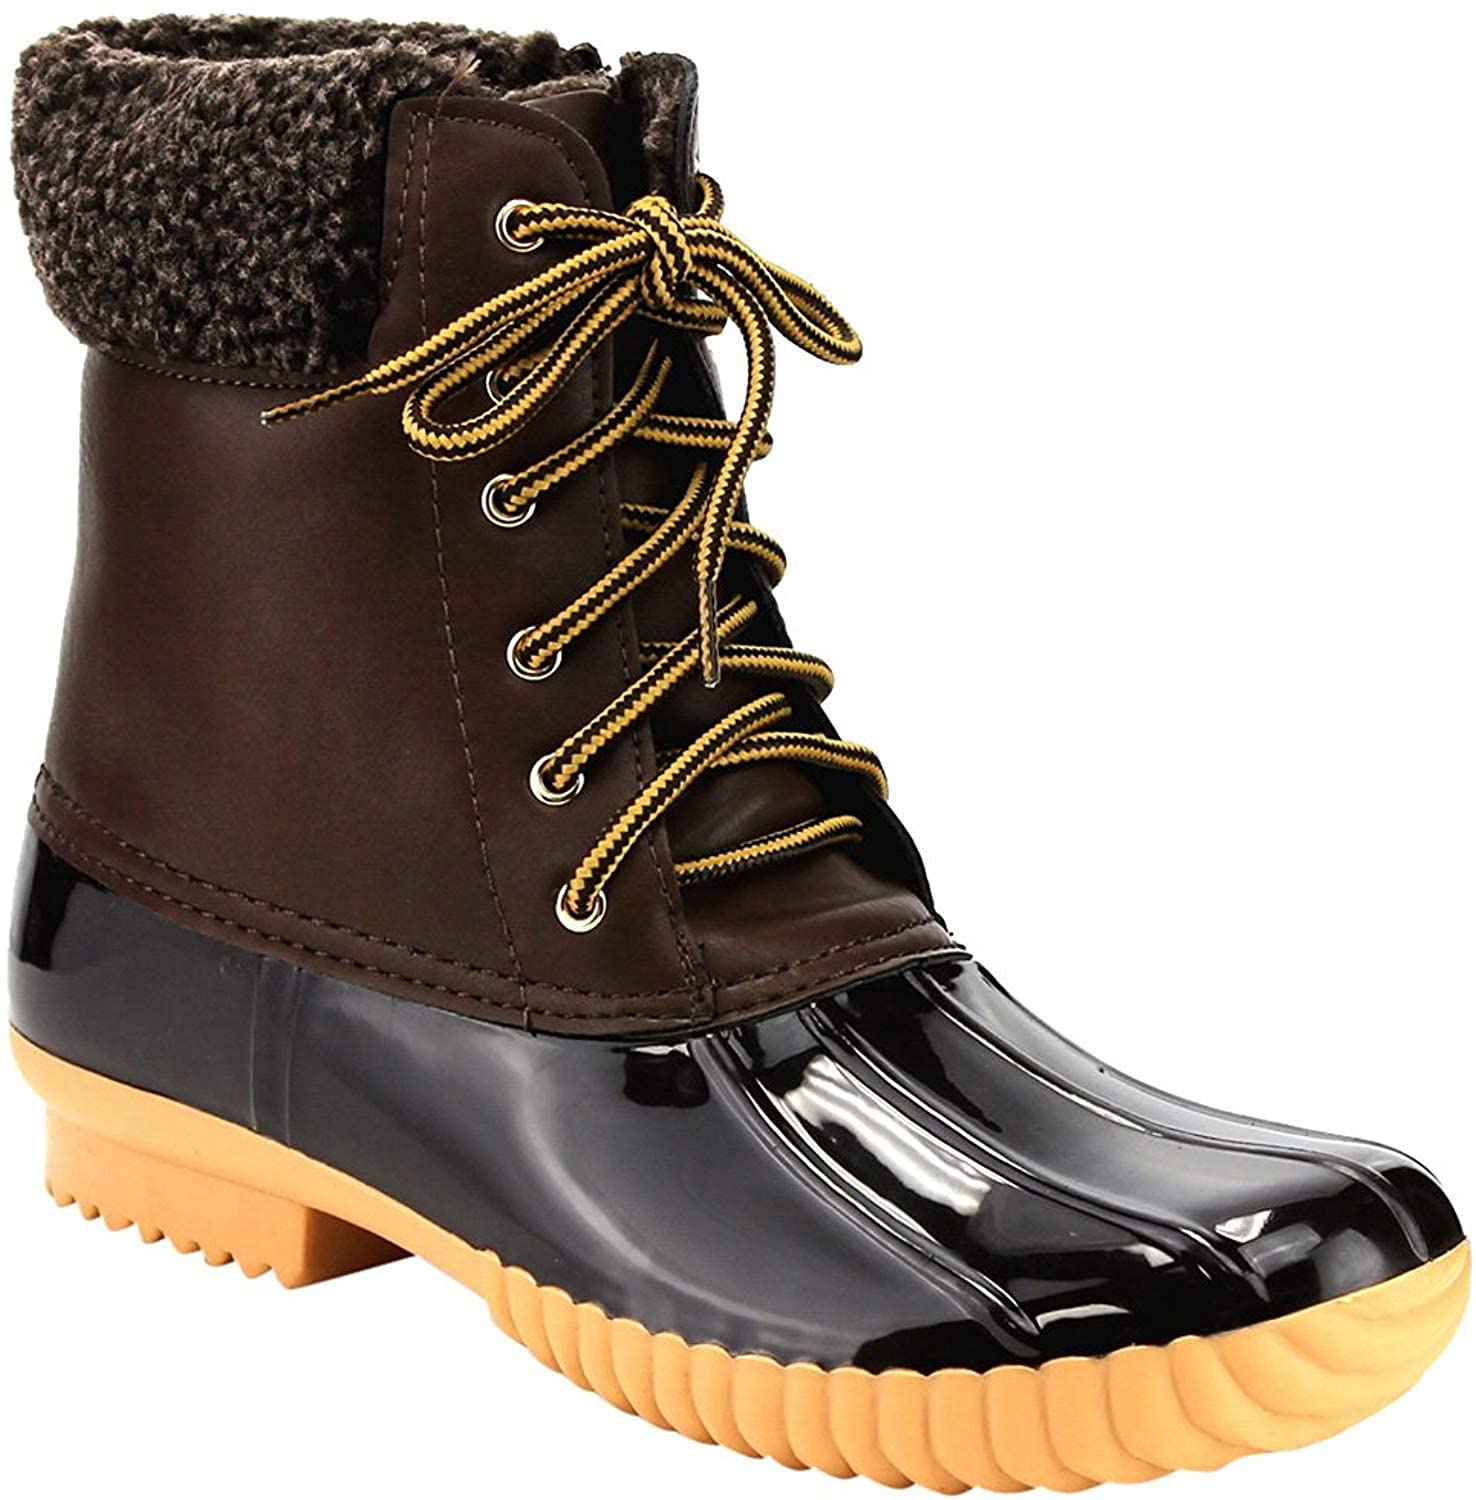 Brown-2 Women's Waterproof Rain Booties Duck Padded Mud Rubber Snow Faux Fur Lace Up Ankle Boots